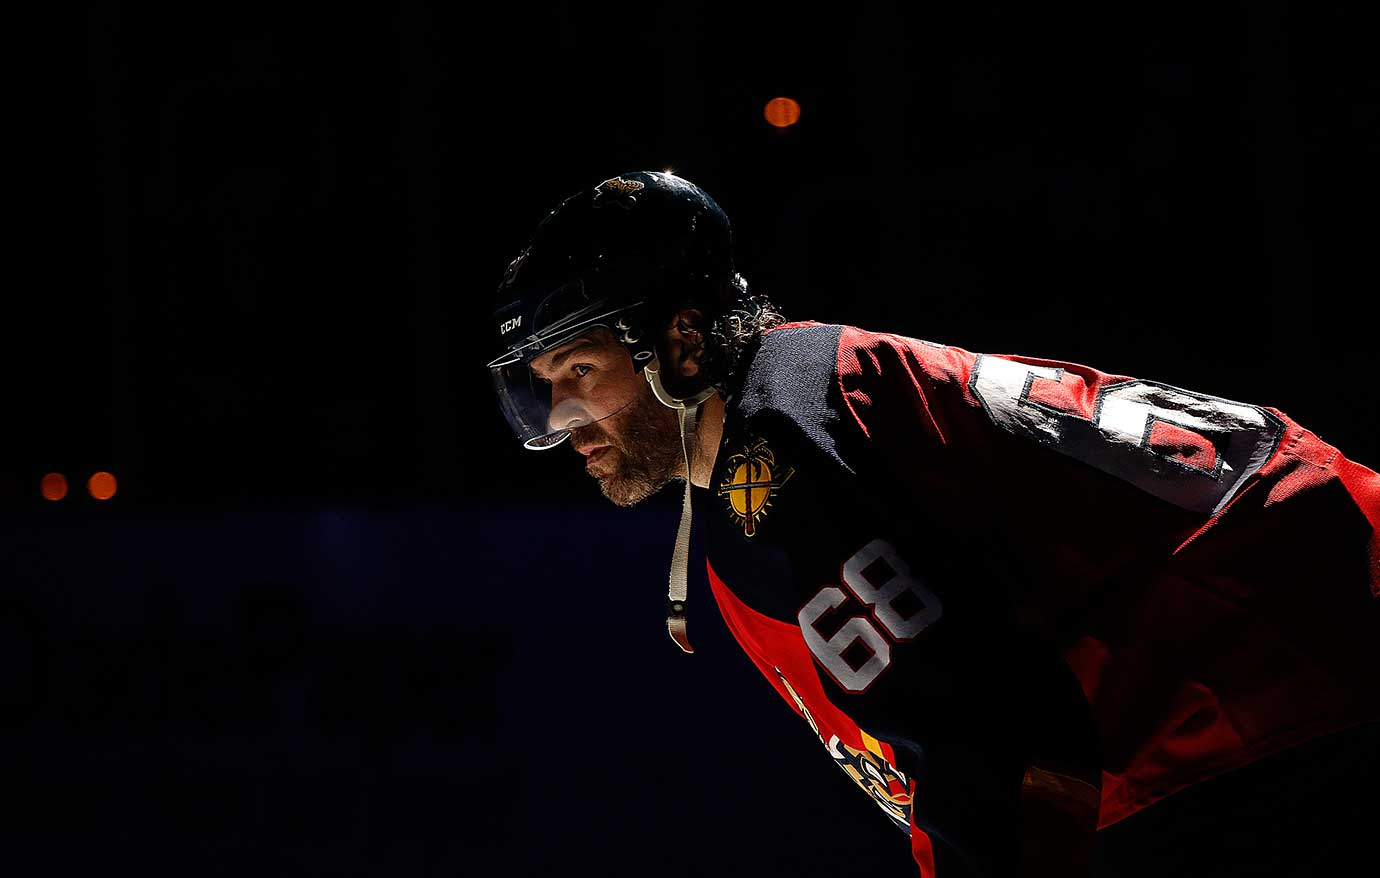 Jaromir Jagr of the Florida Panthers skates on the ice prior a game against Arizona.